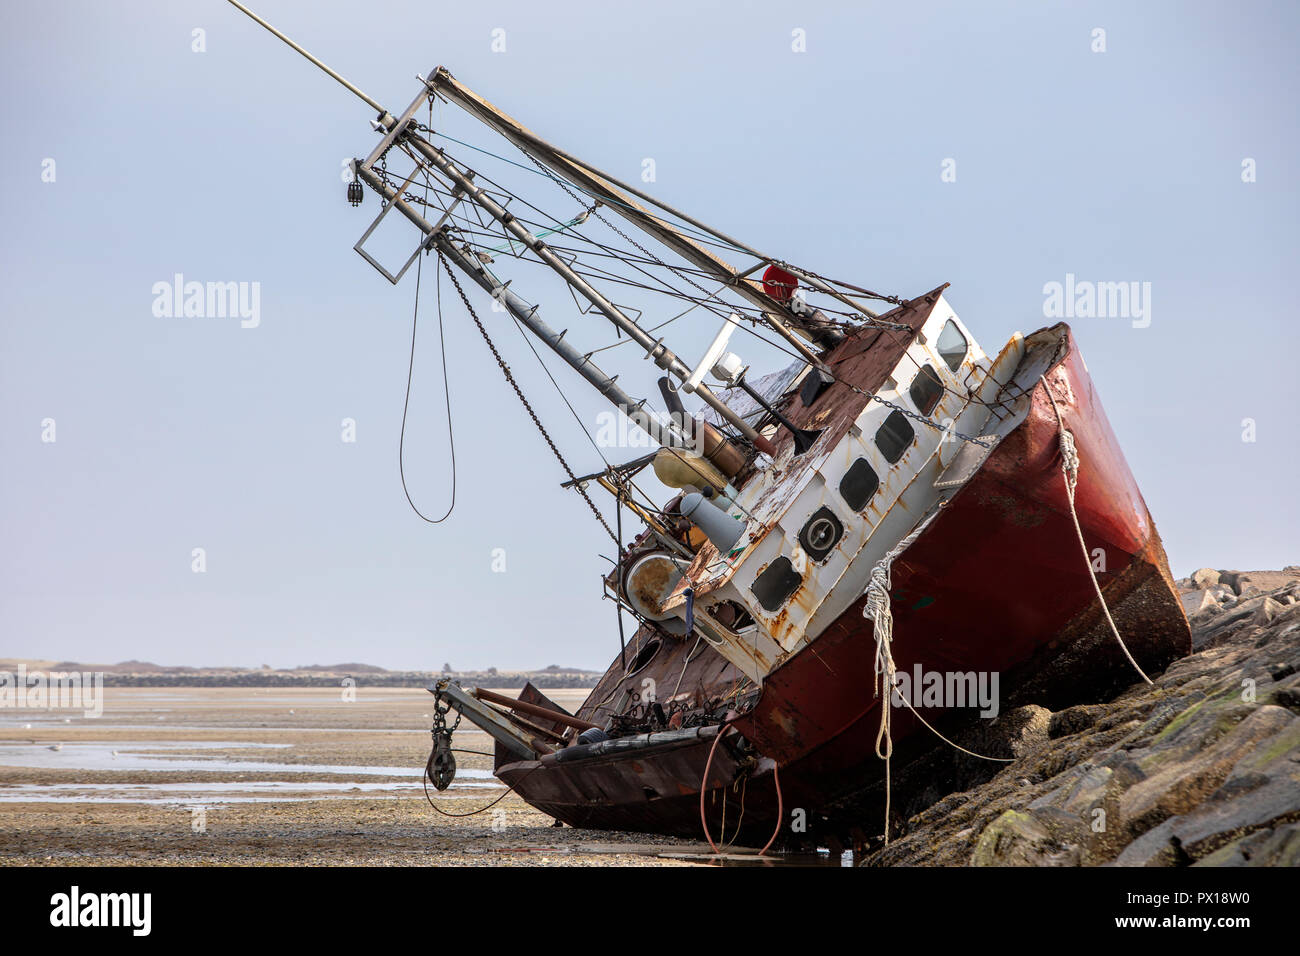 An abandoned derelict fishing boat stranded on a rock jetty. - Stock Image